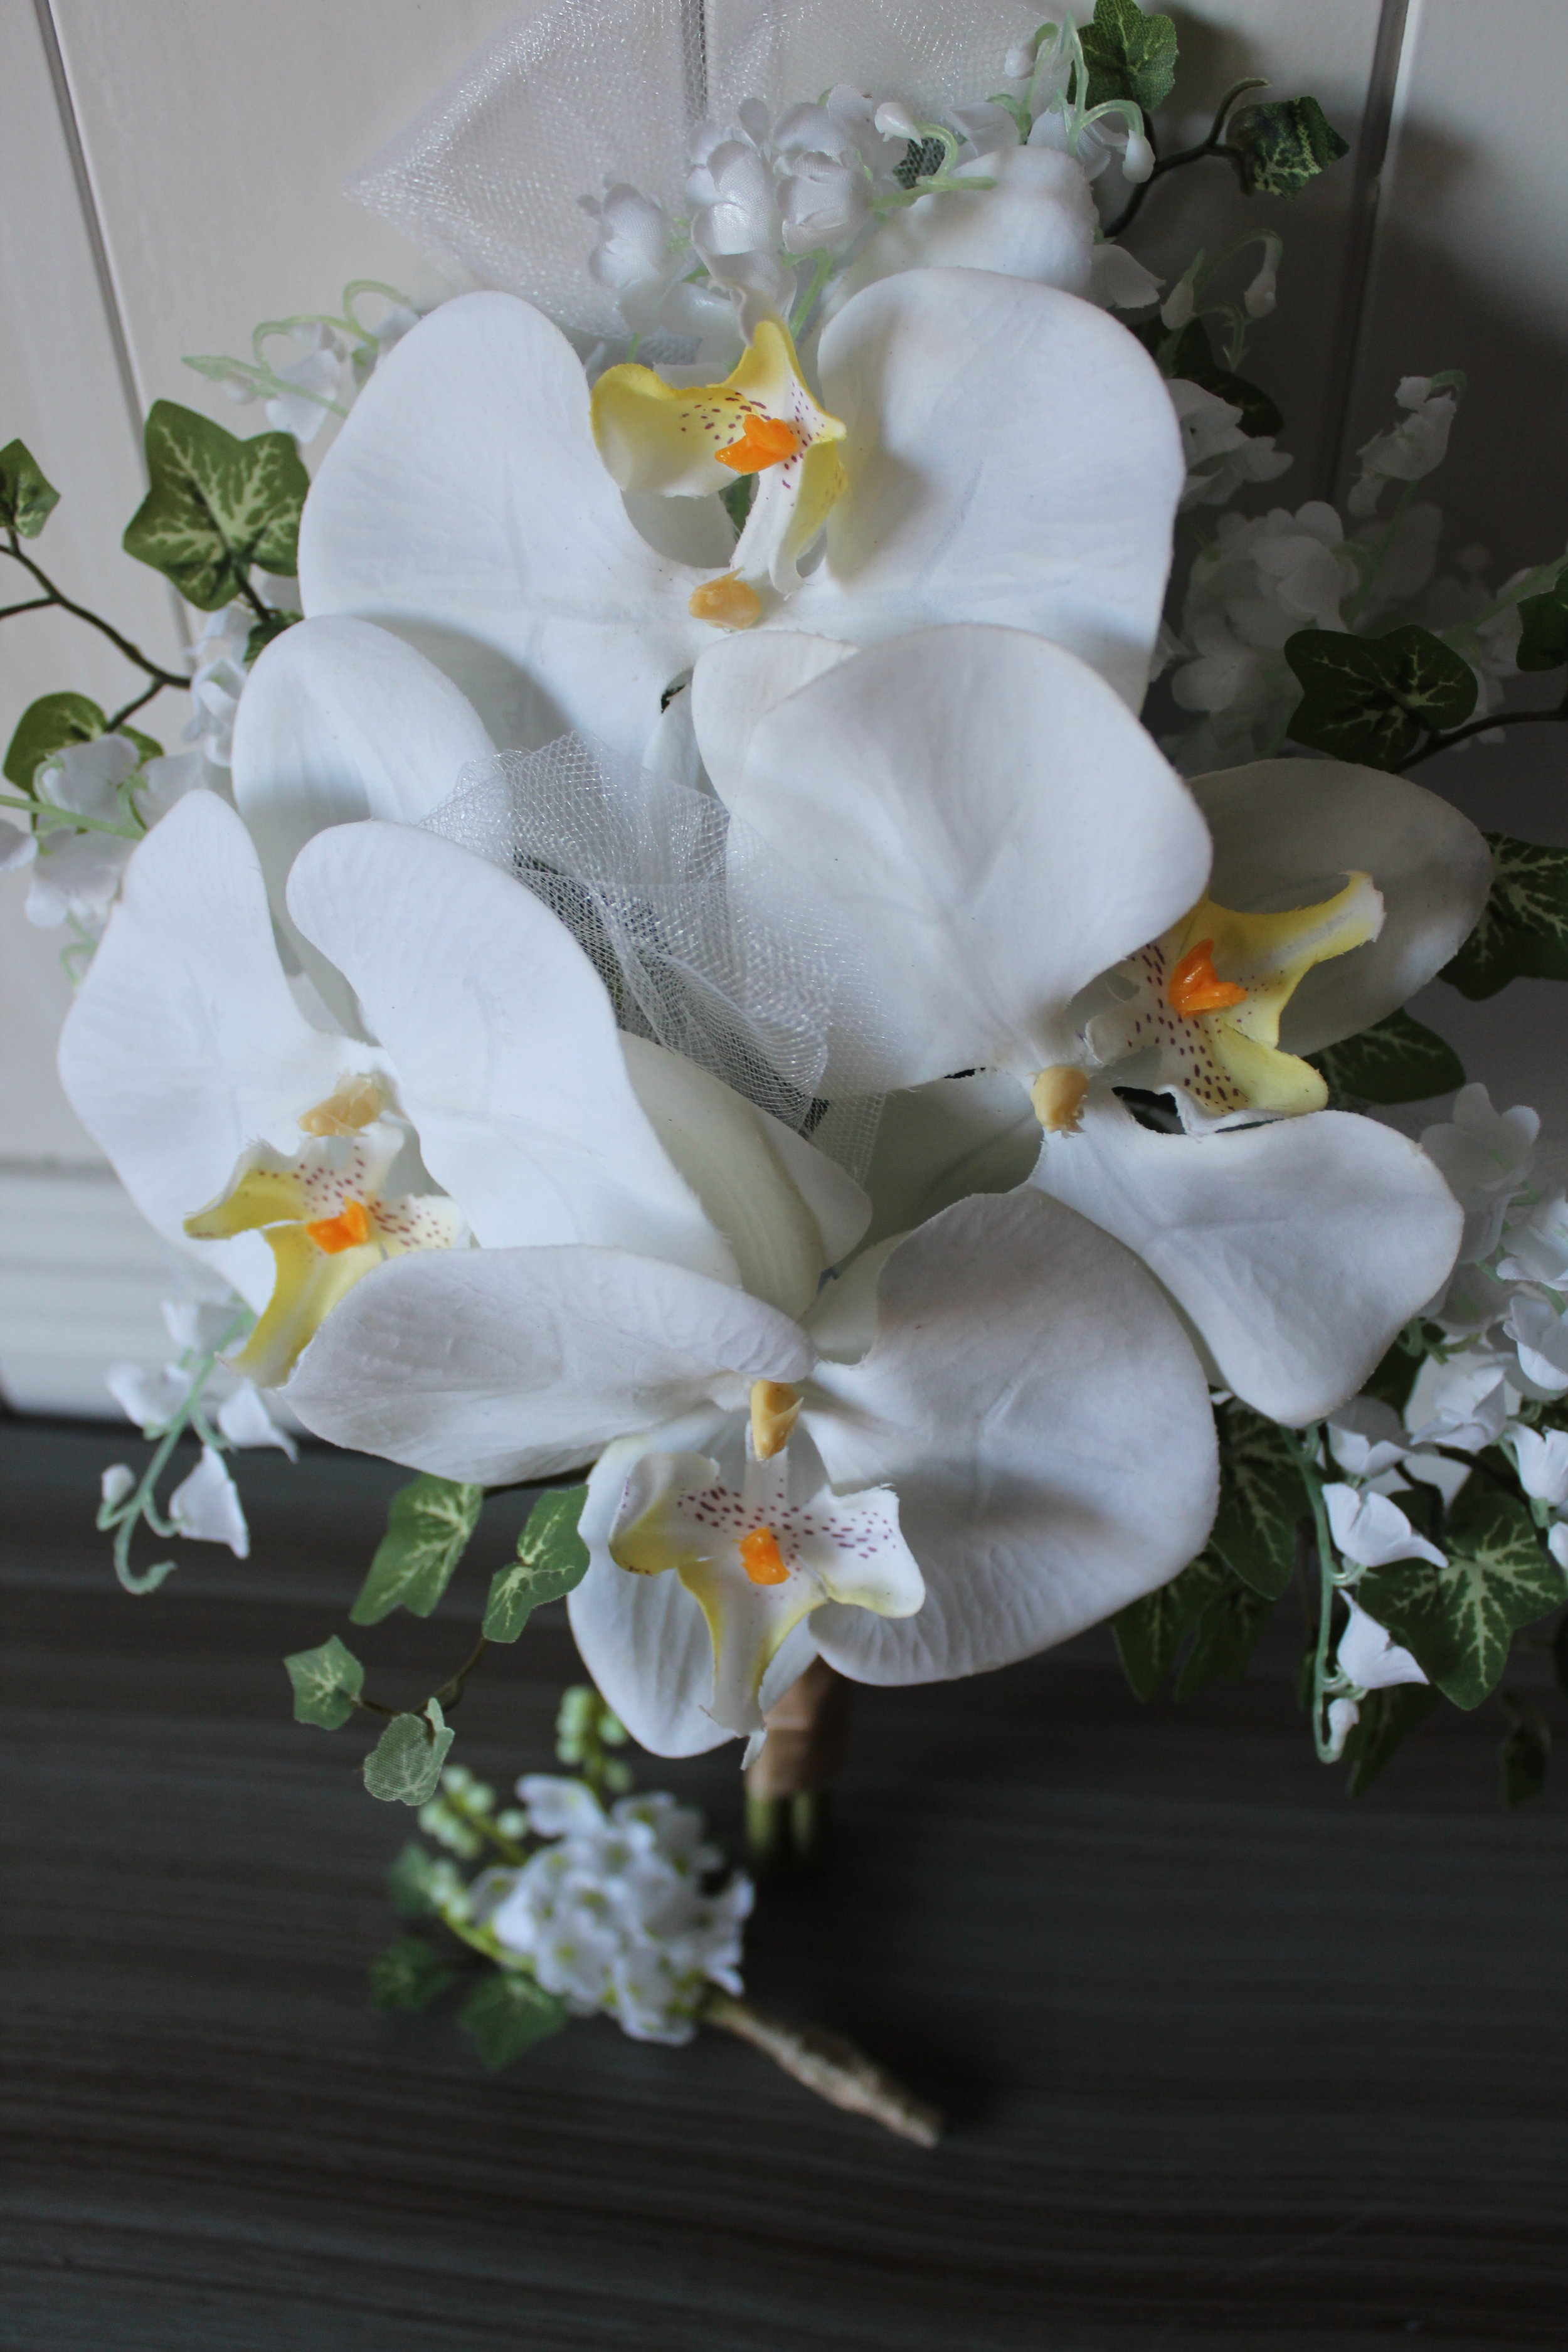 Phalaenopsis Orchids, Lily of the Valley, and Ivy